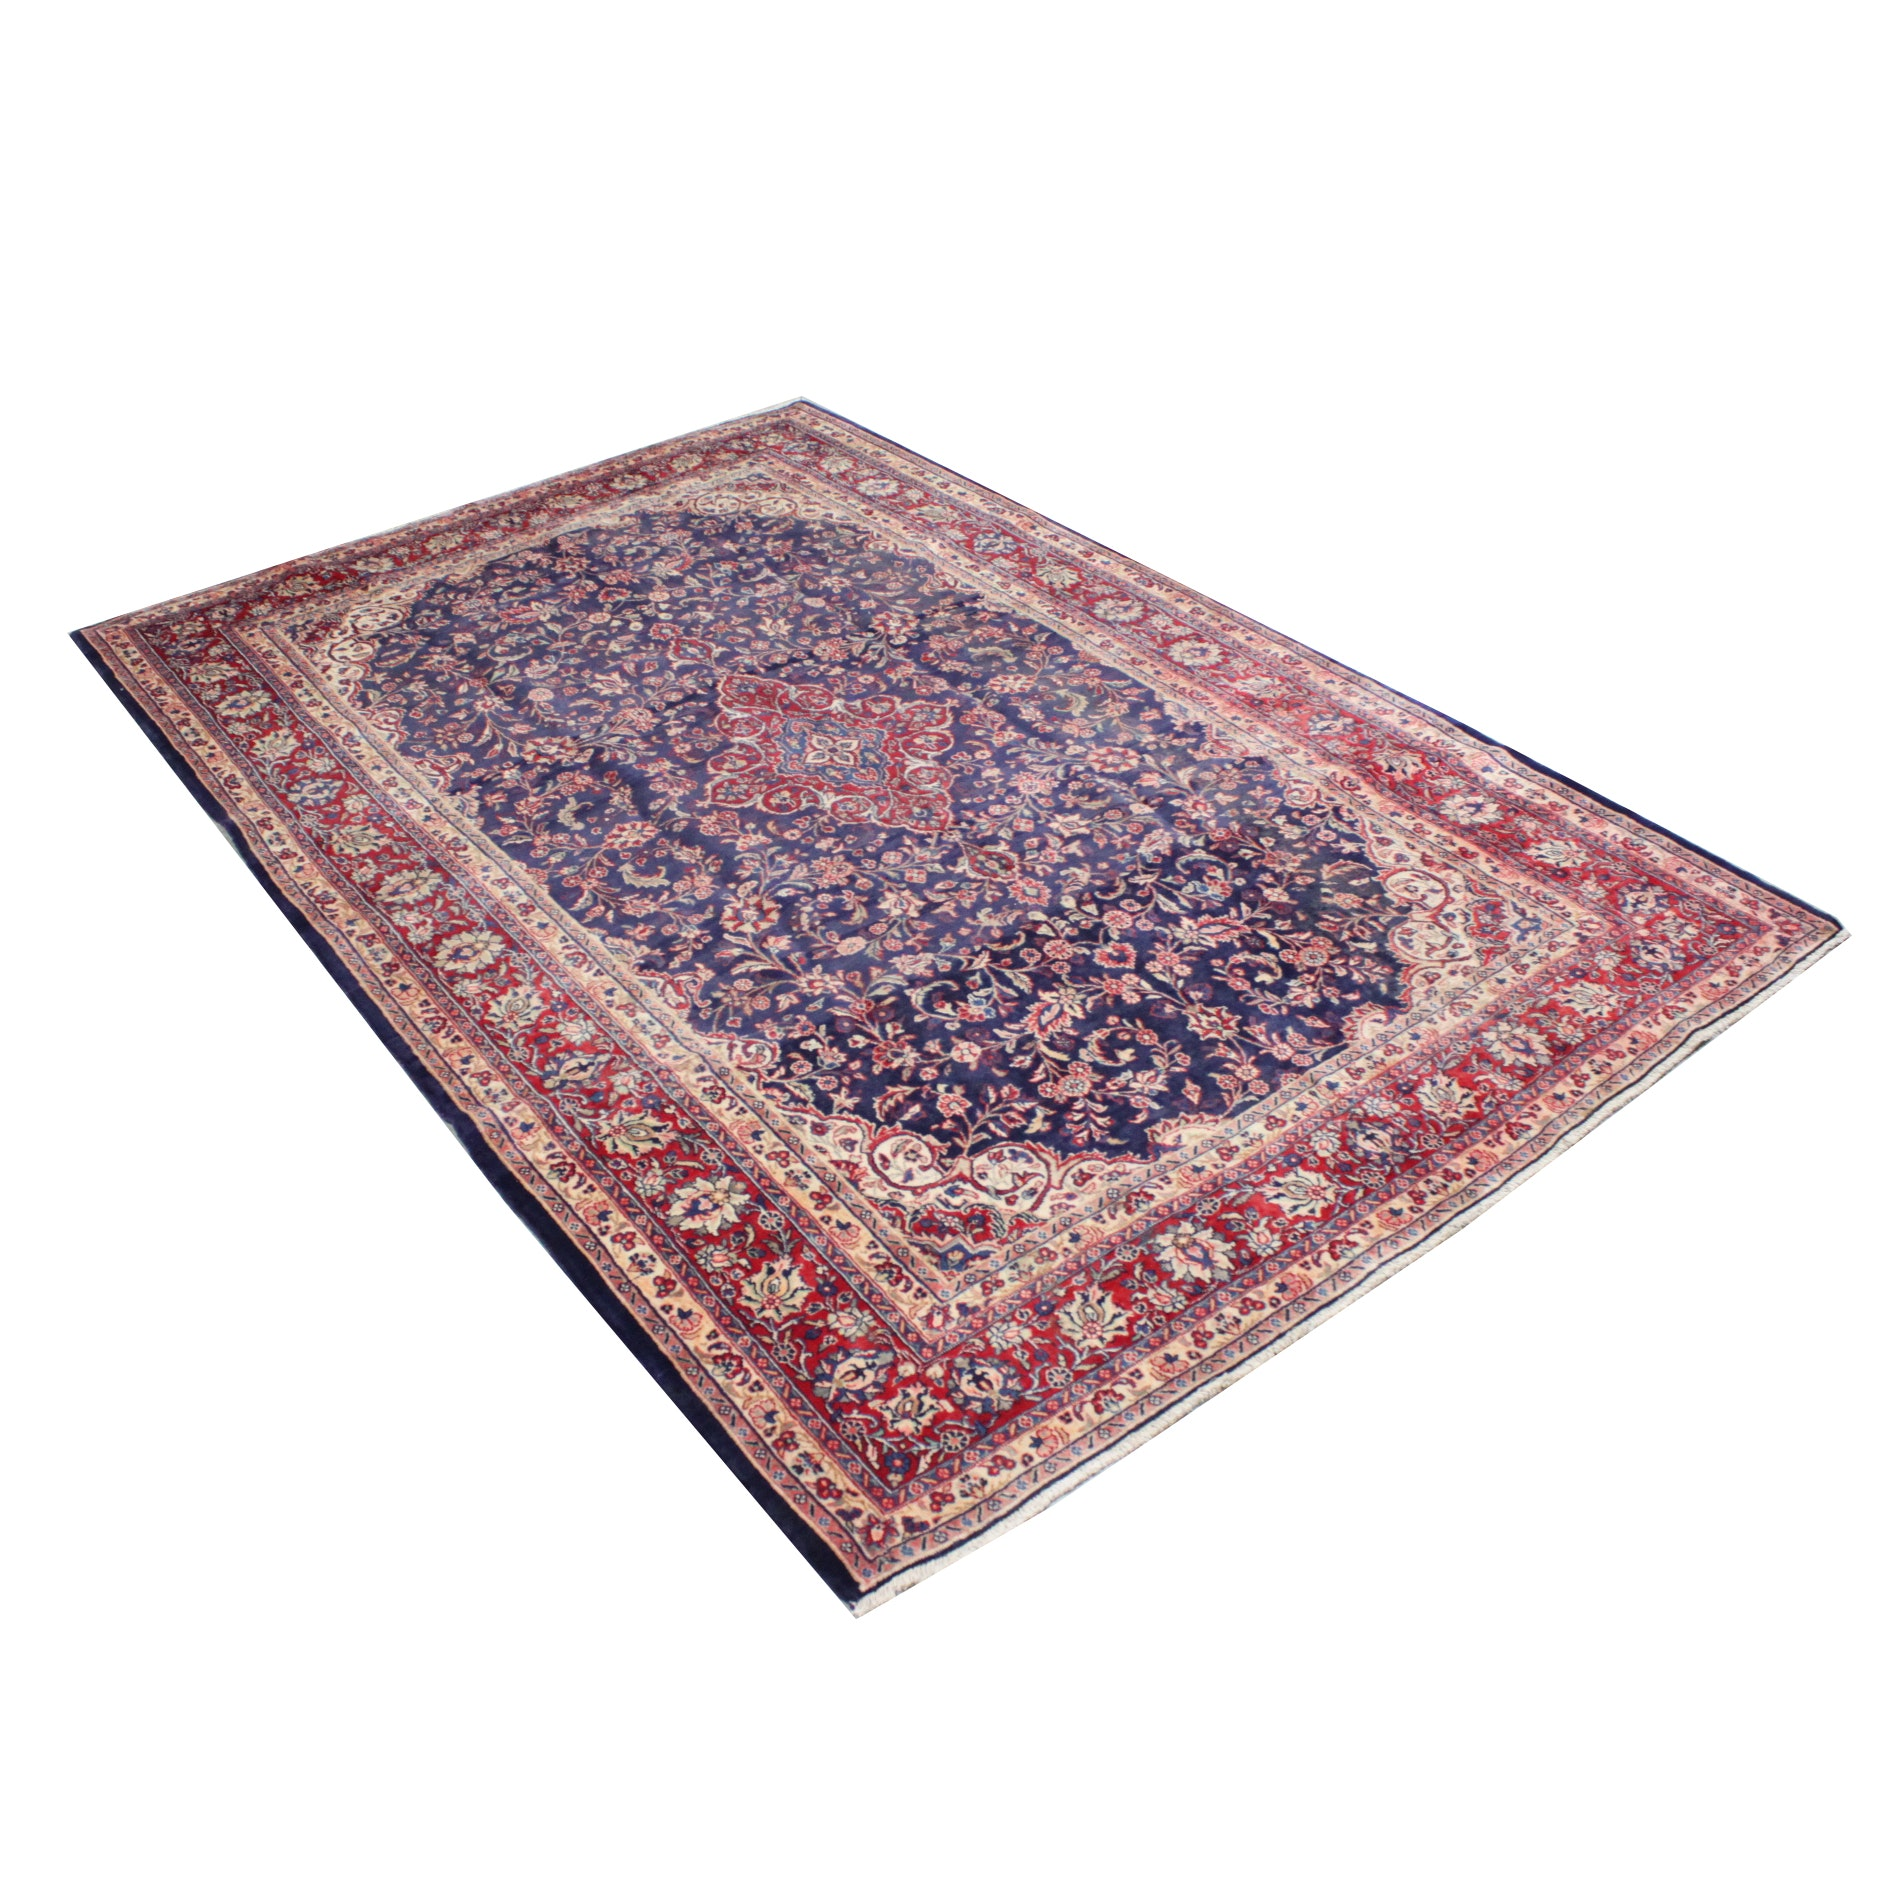 Finely Hand-Knotted Tabriz Wool Area Rug